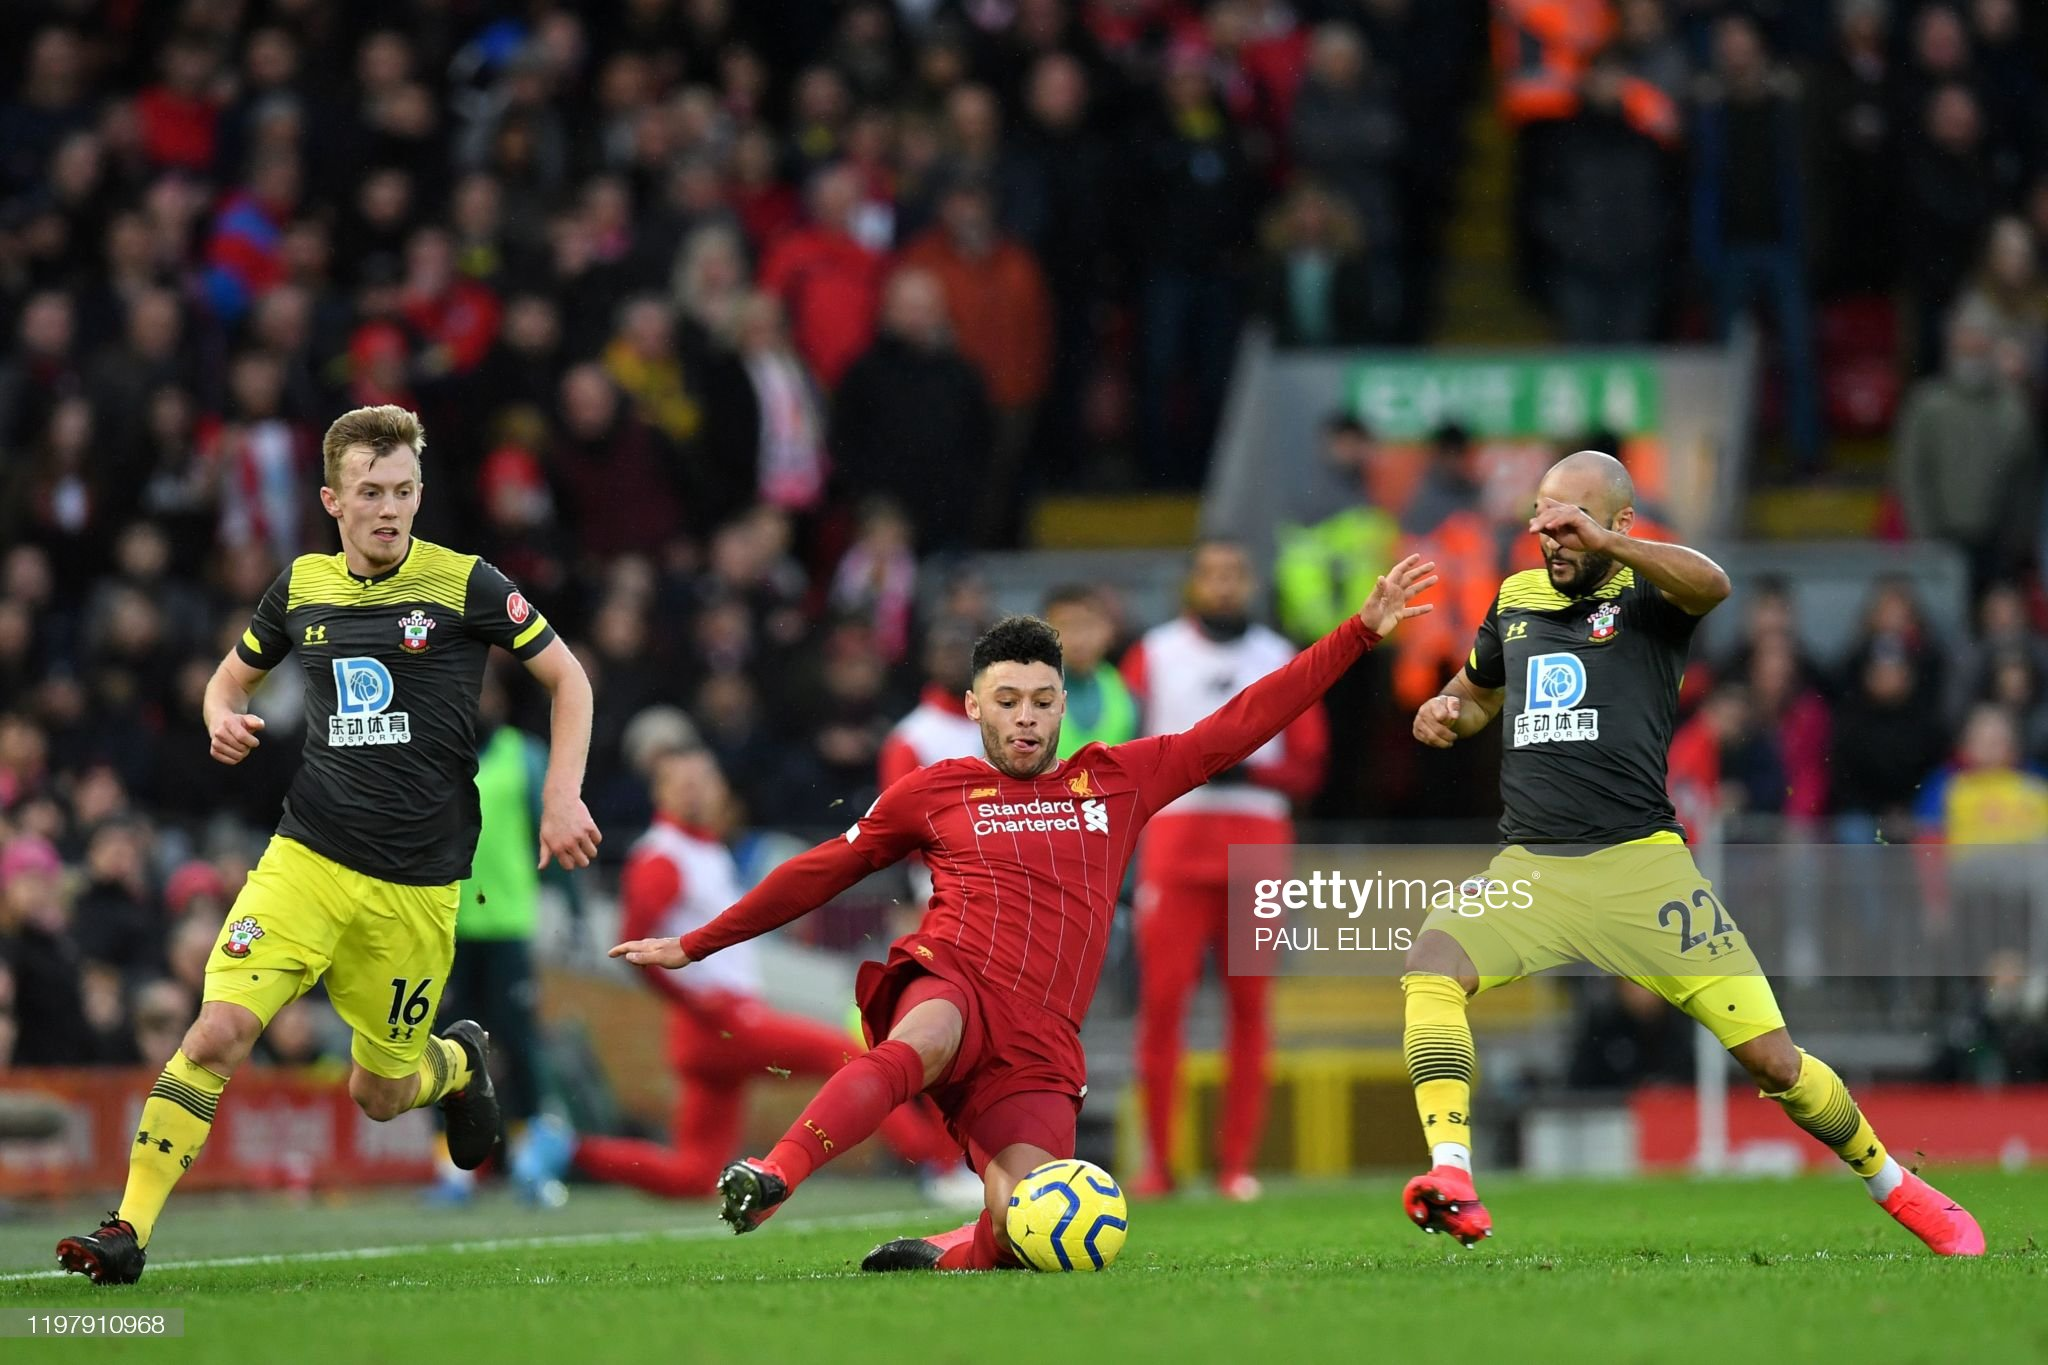 Southampton vs Liverpool preview, prediction and odds